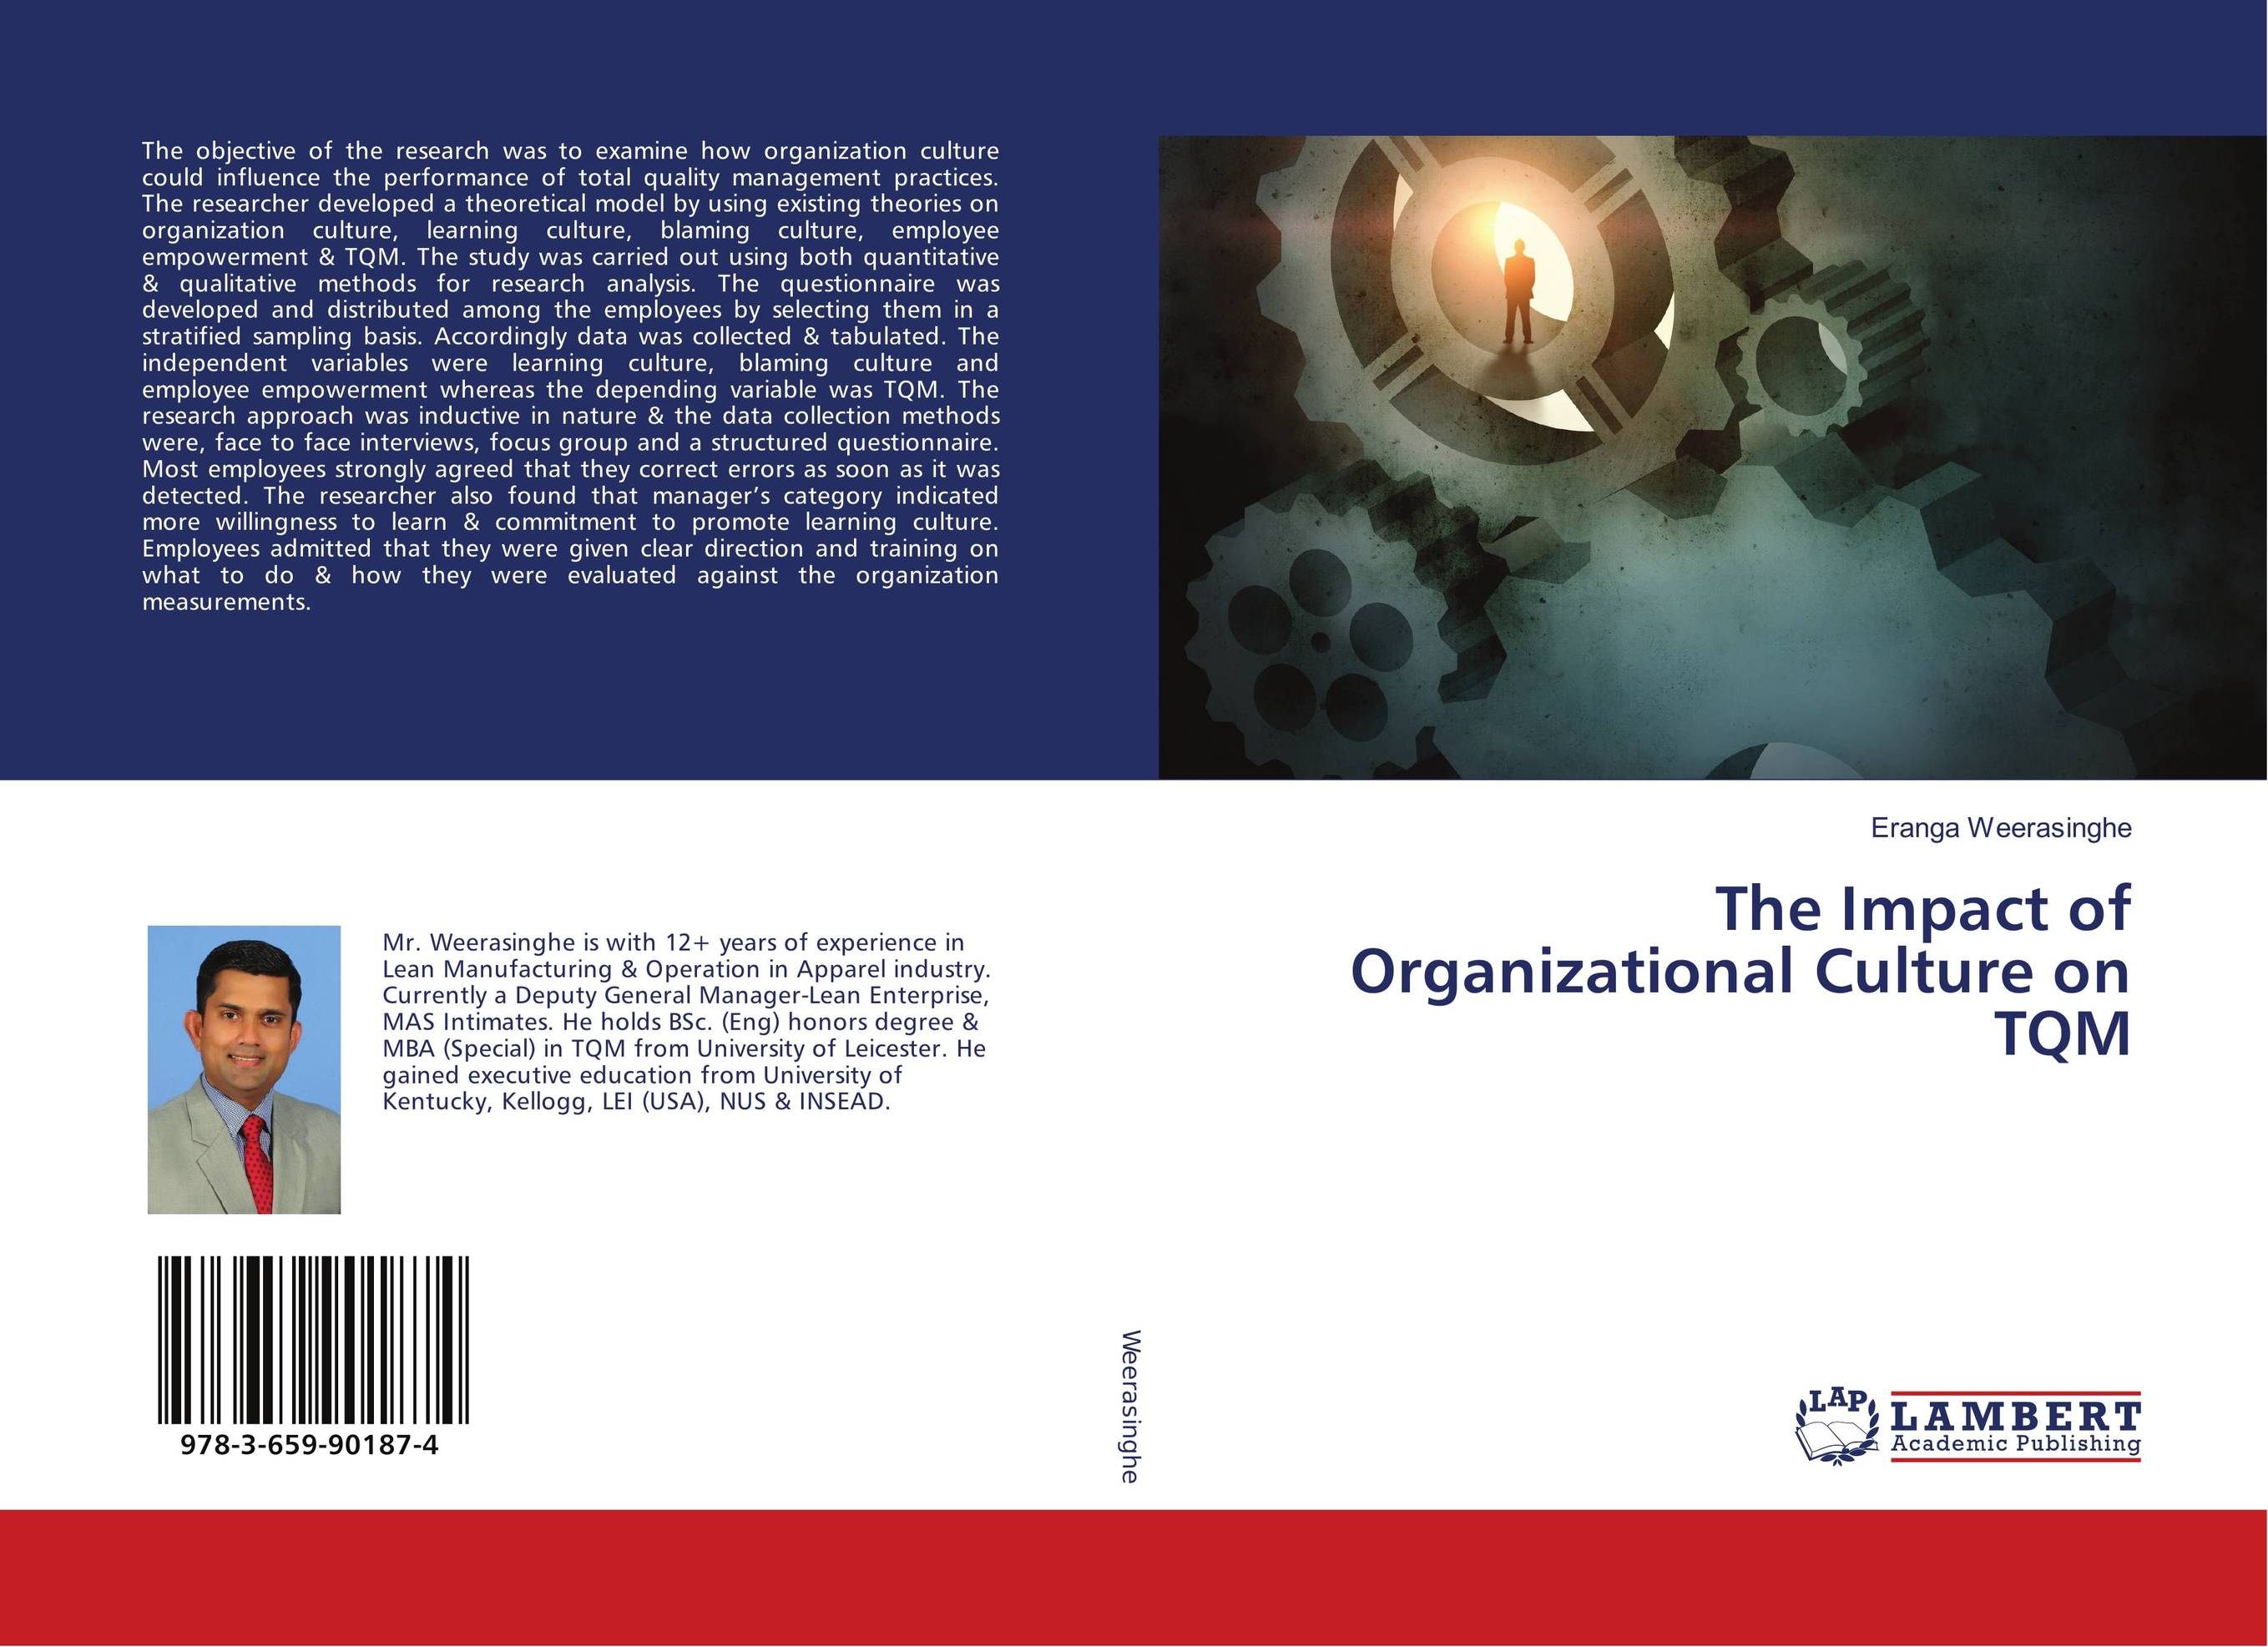 an analysis of the culture of an organization Organizational culture can be viewed as an important concept in organizational psychology and social psychology beliefs that are part of an organization's culture may include beliefs about the best ways to achieve certain goals such as increasing productivity and job motivation.